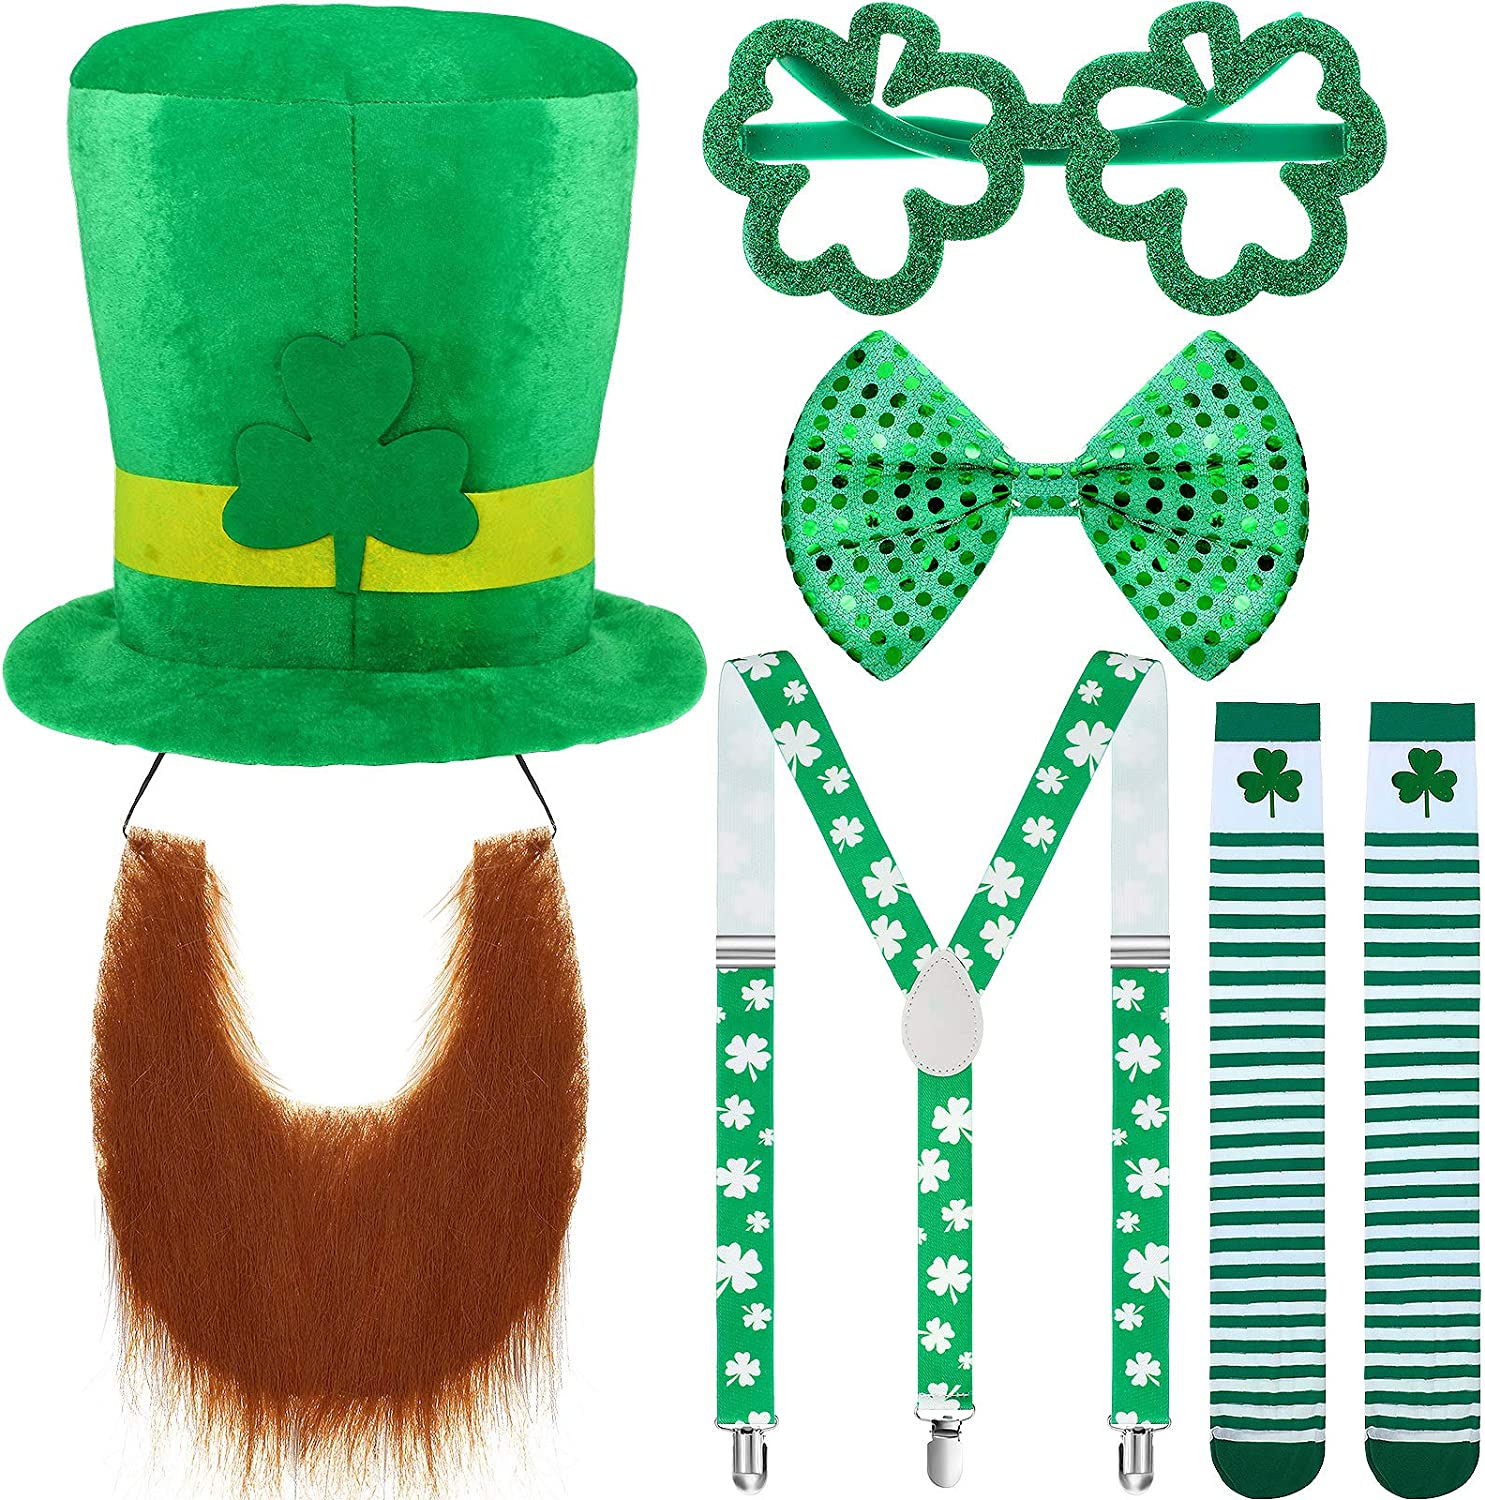 Sequin Bow Tie St.Patricks Days Costume Accessories Set Shamrock Leprechaun Hat Irish Faux Mustache Shamrock Suspenders Shamrock Shaped Glasses and Shamrock Socks for St Patricks Day Party